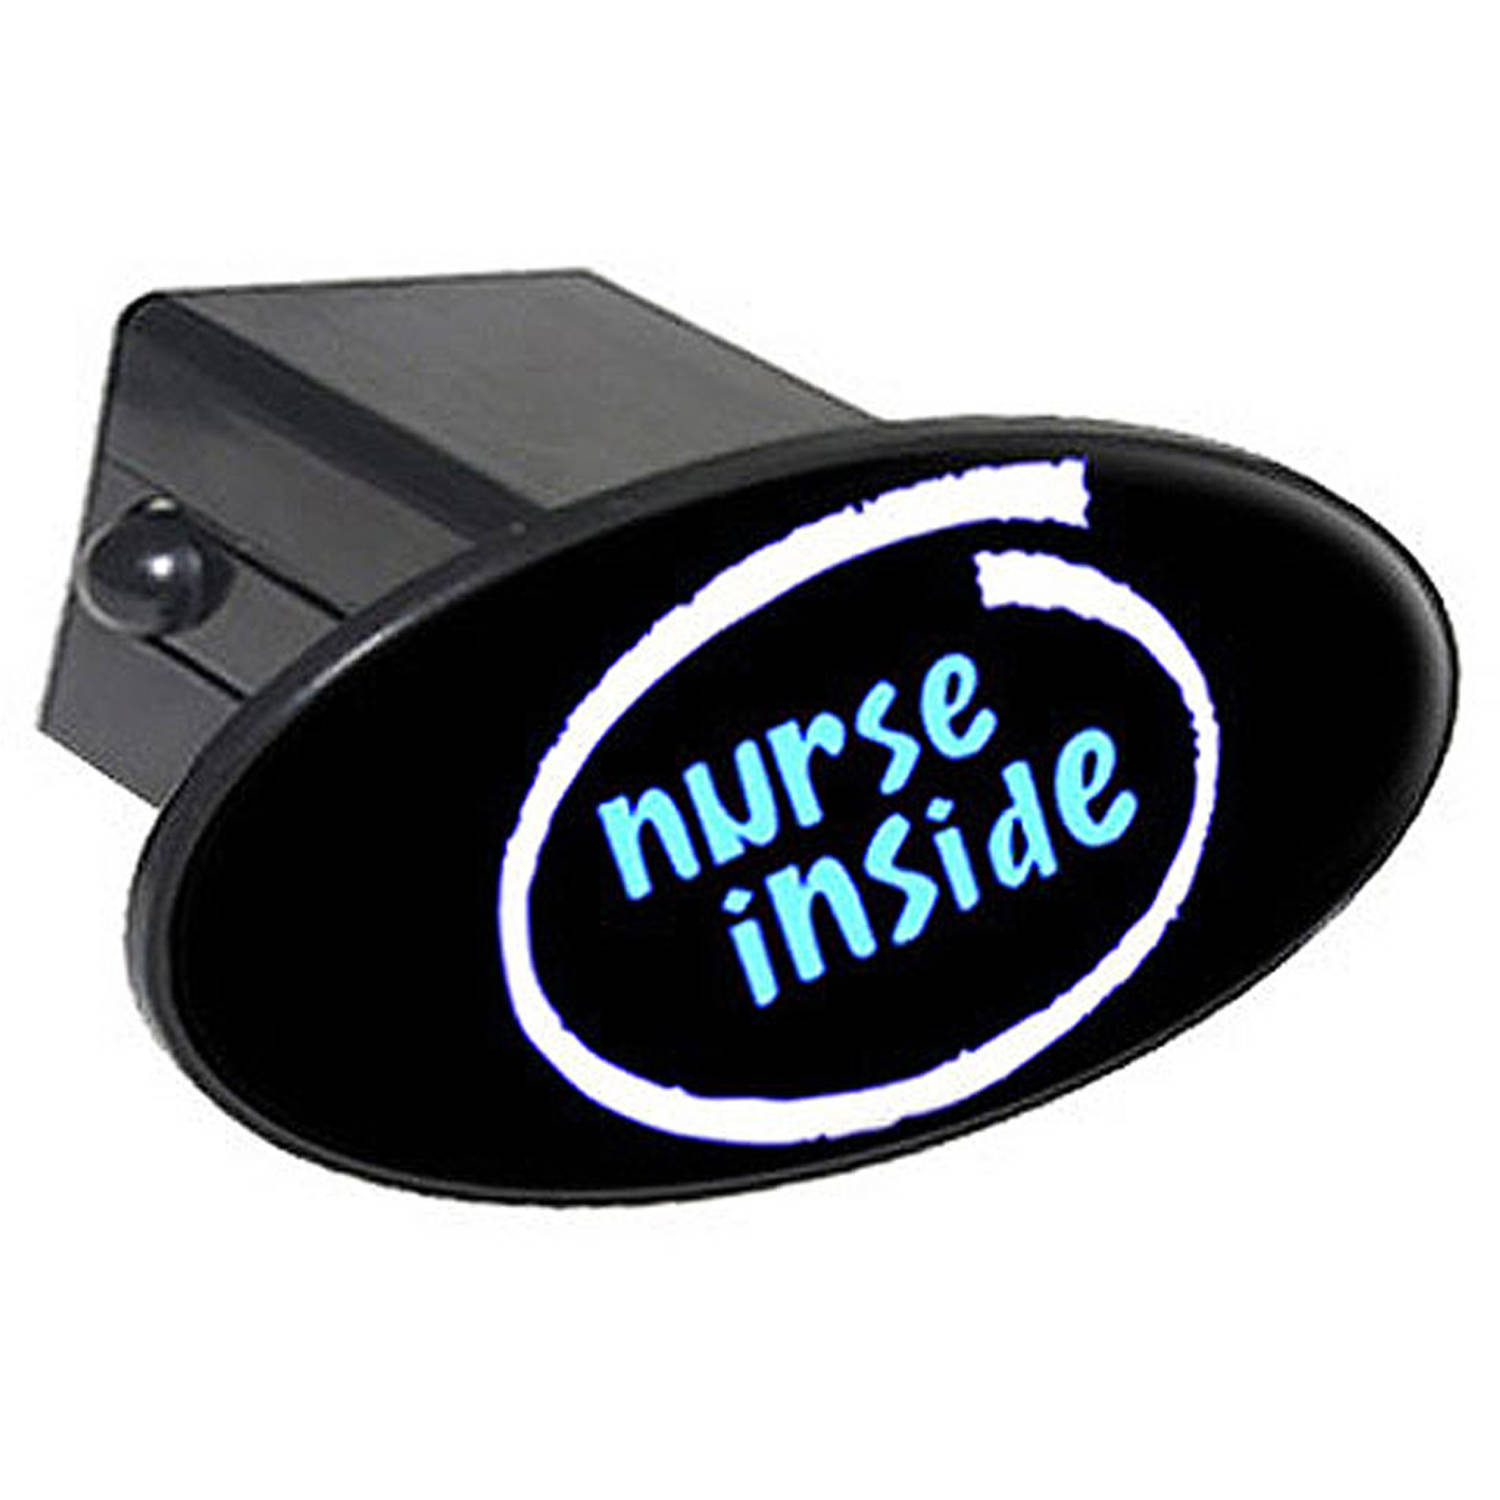 "Nurse Inside 2"" Oval Tow Trailer Hitch Cover Plug Insert"